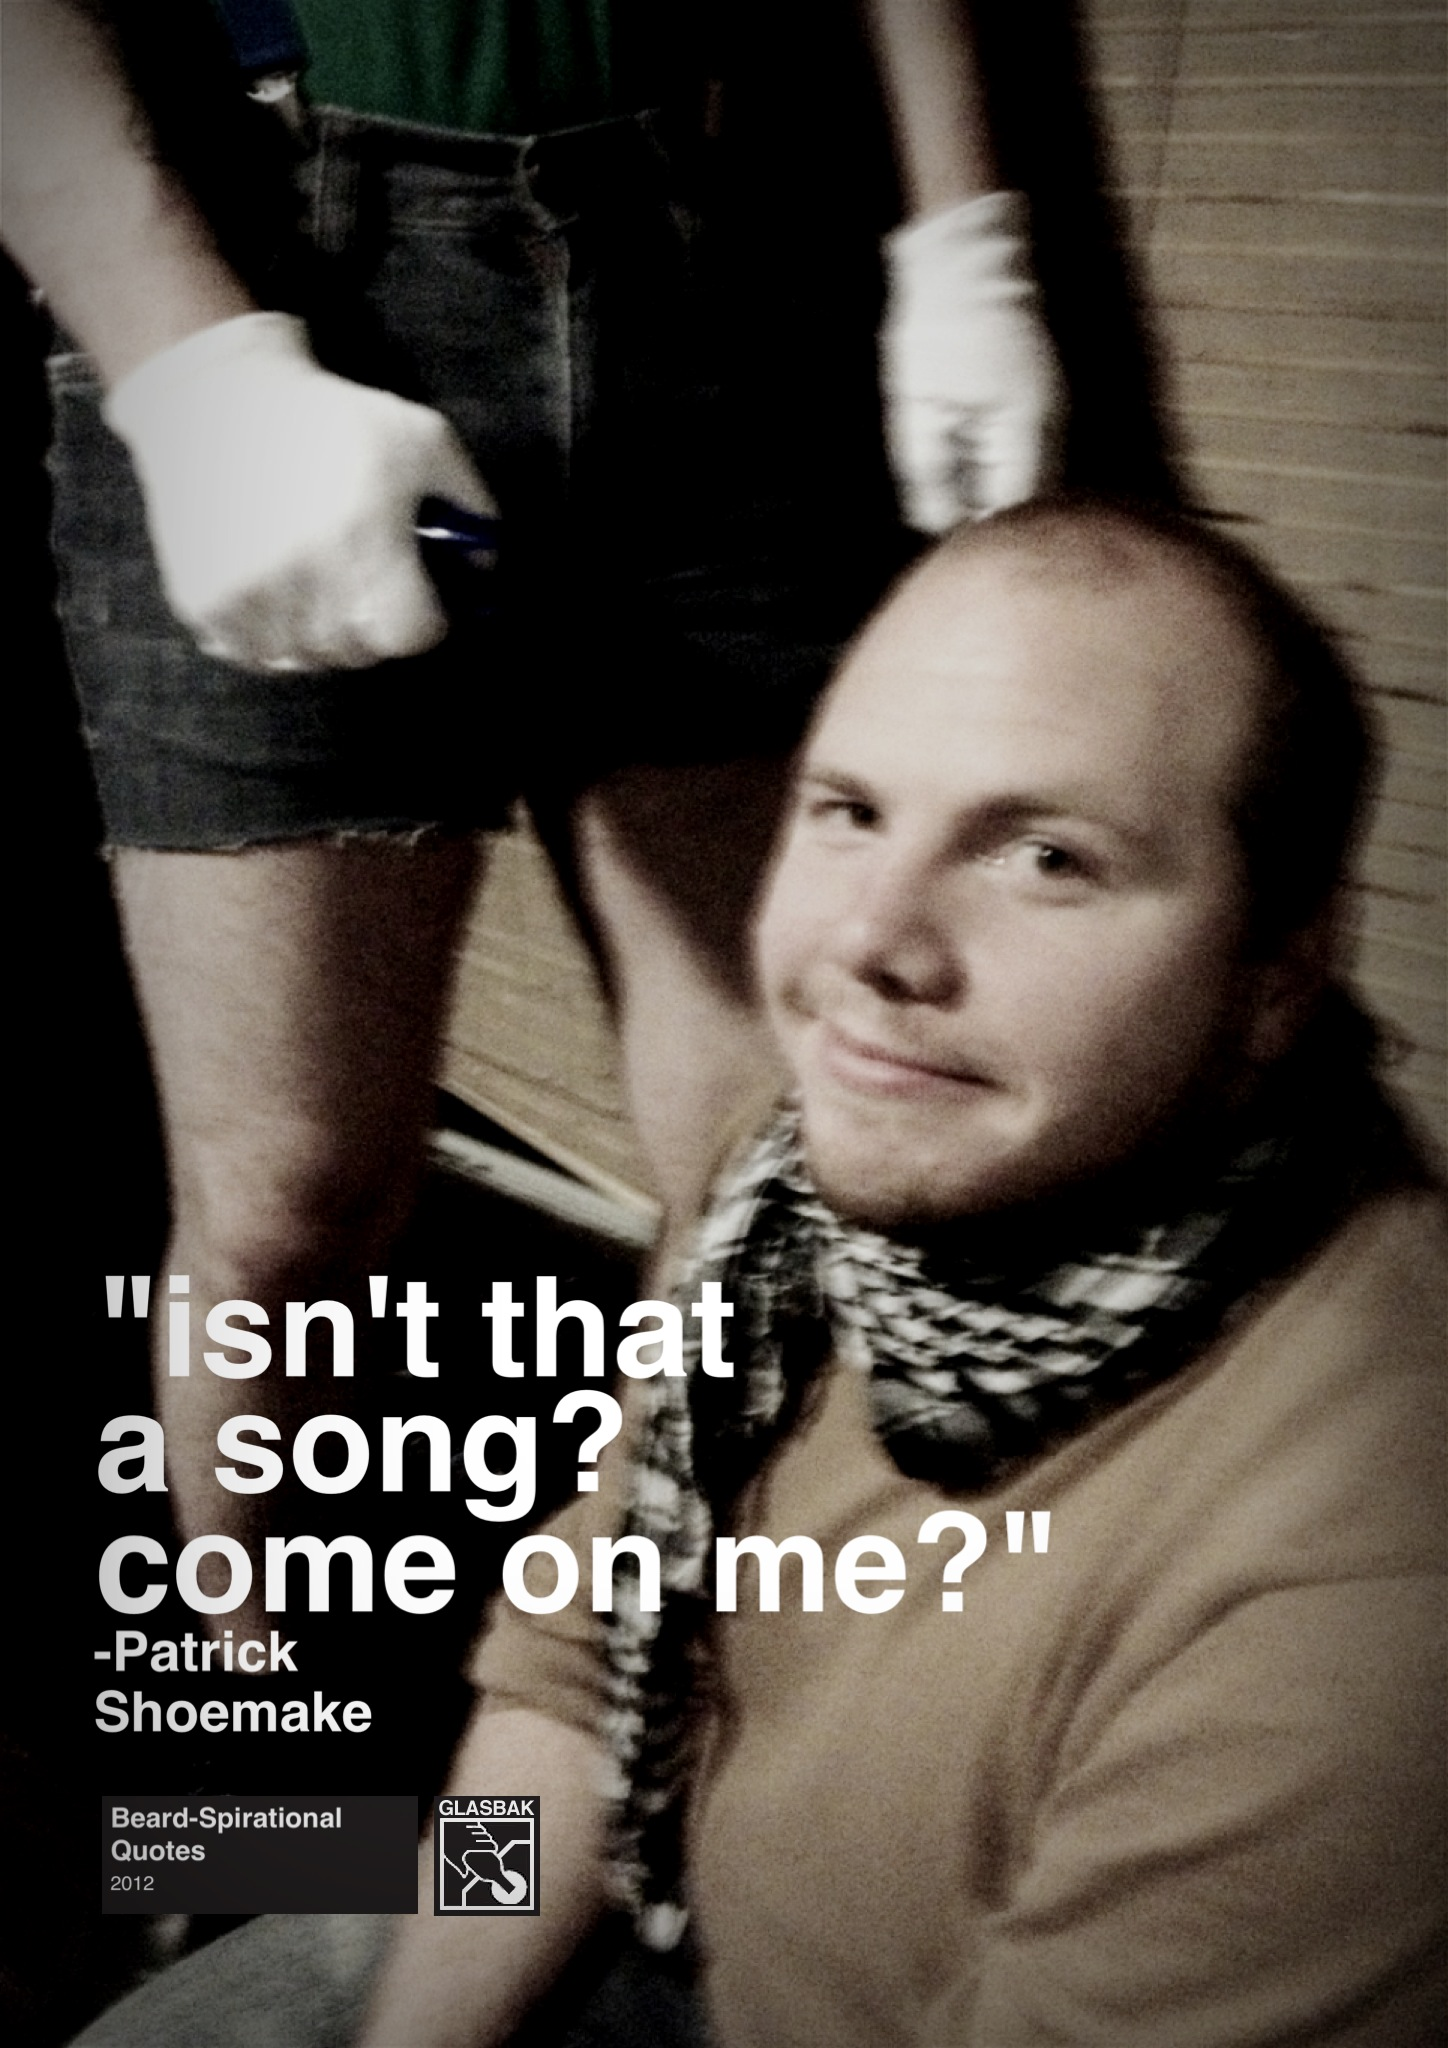 2012-12-13_Isn't That a Song Come On Me.jpg